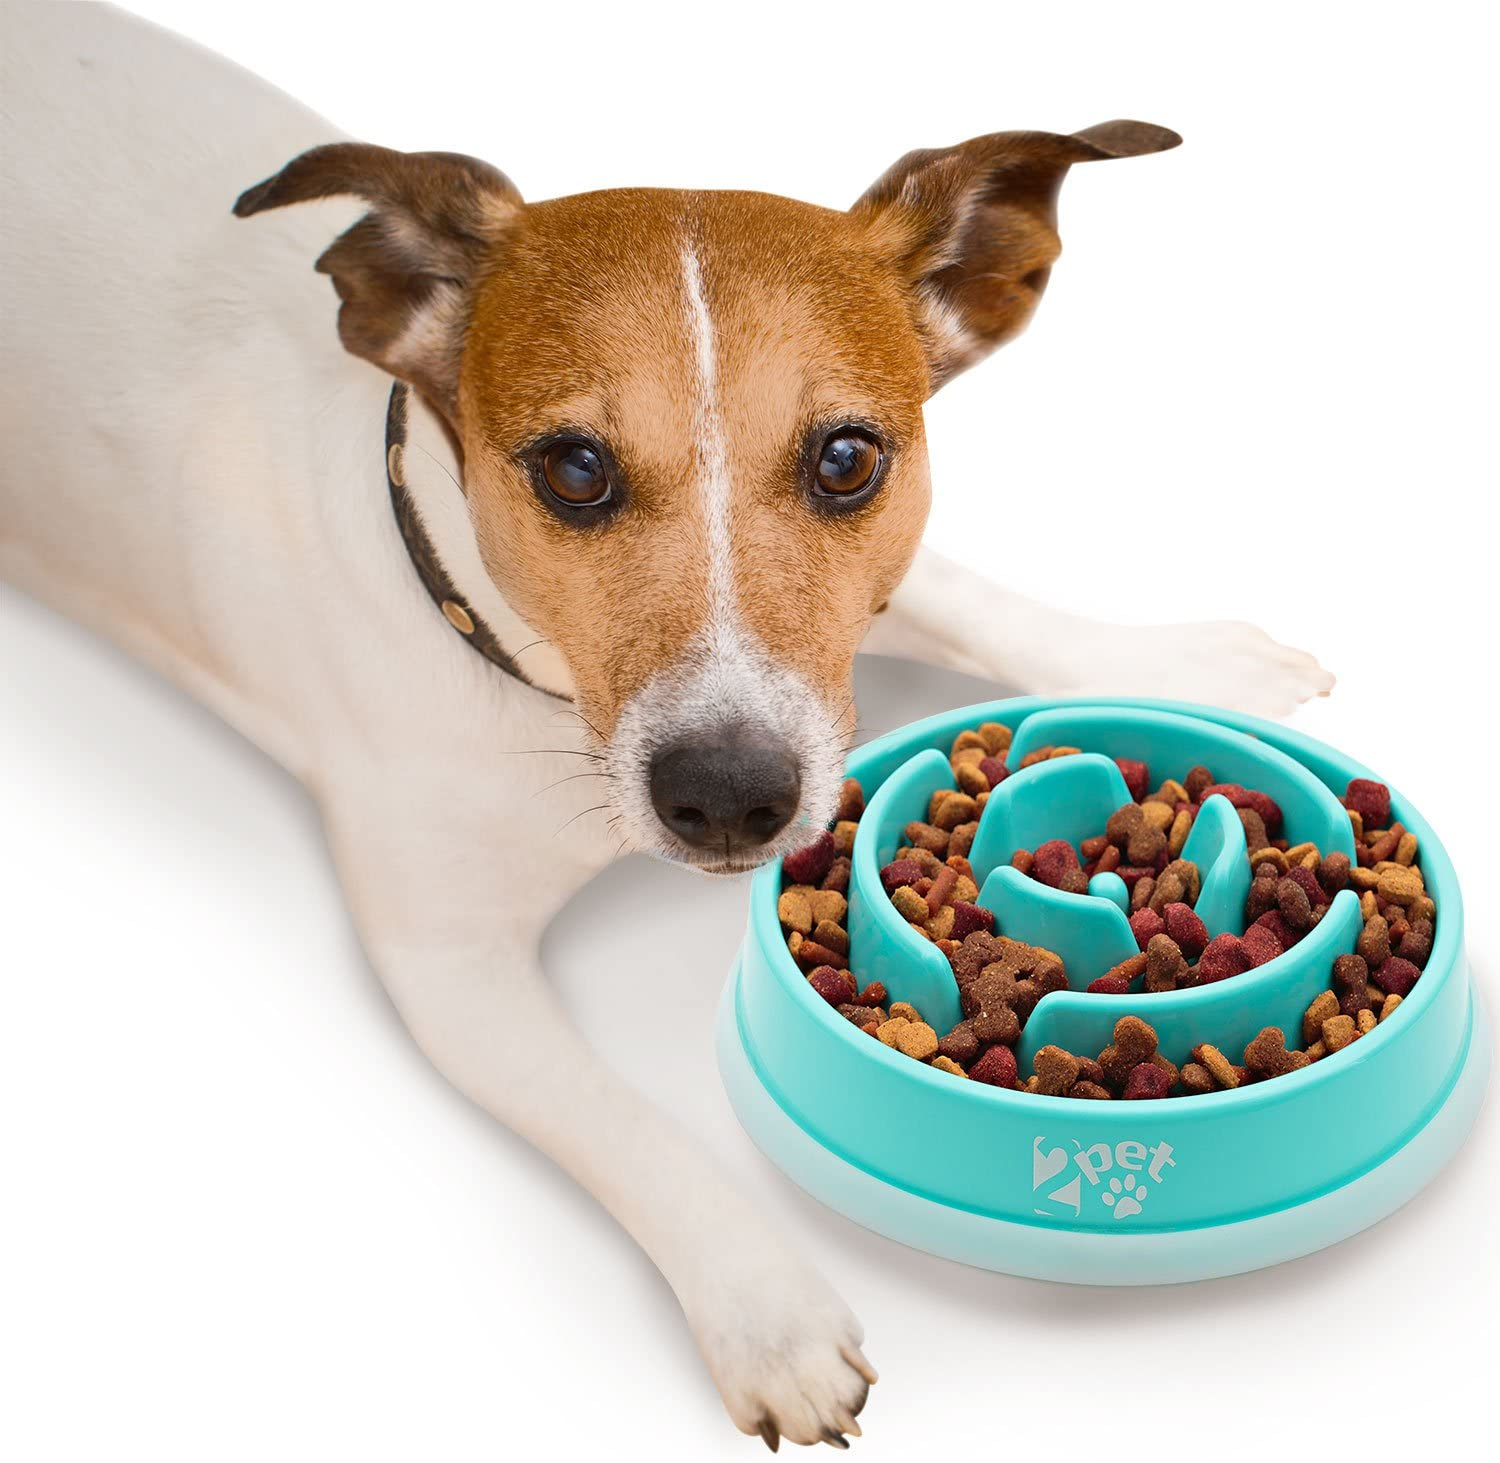 slow down dogs eating